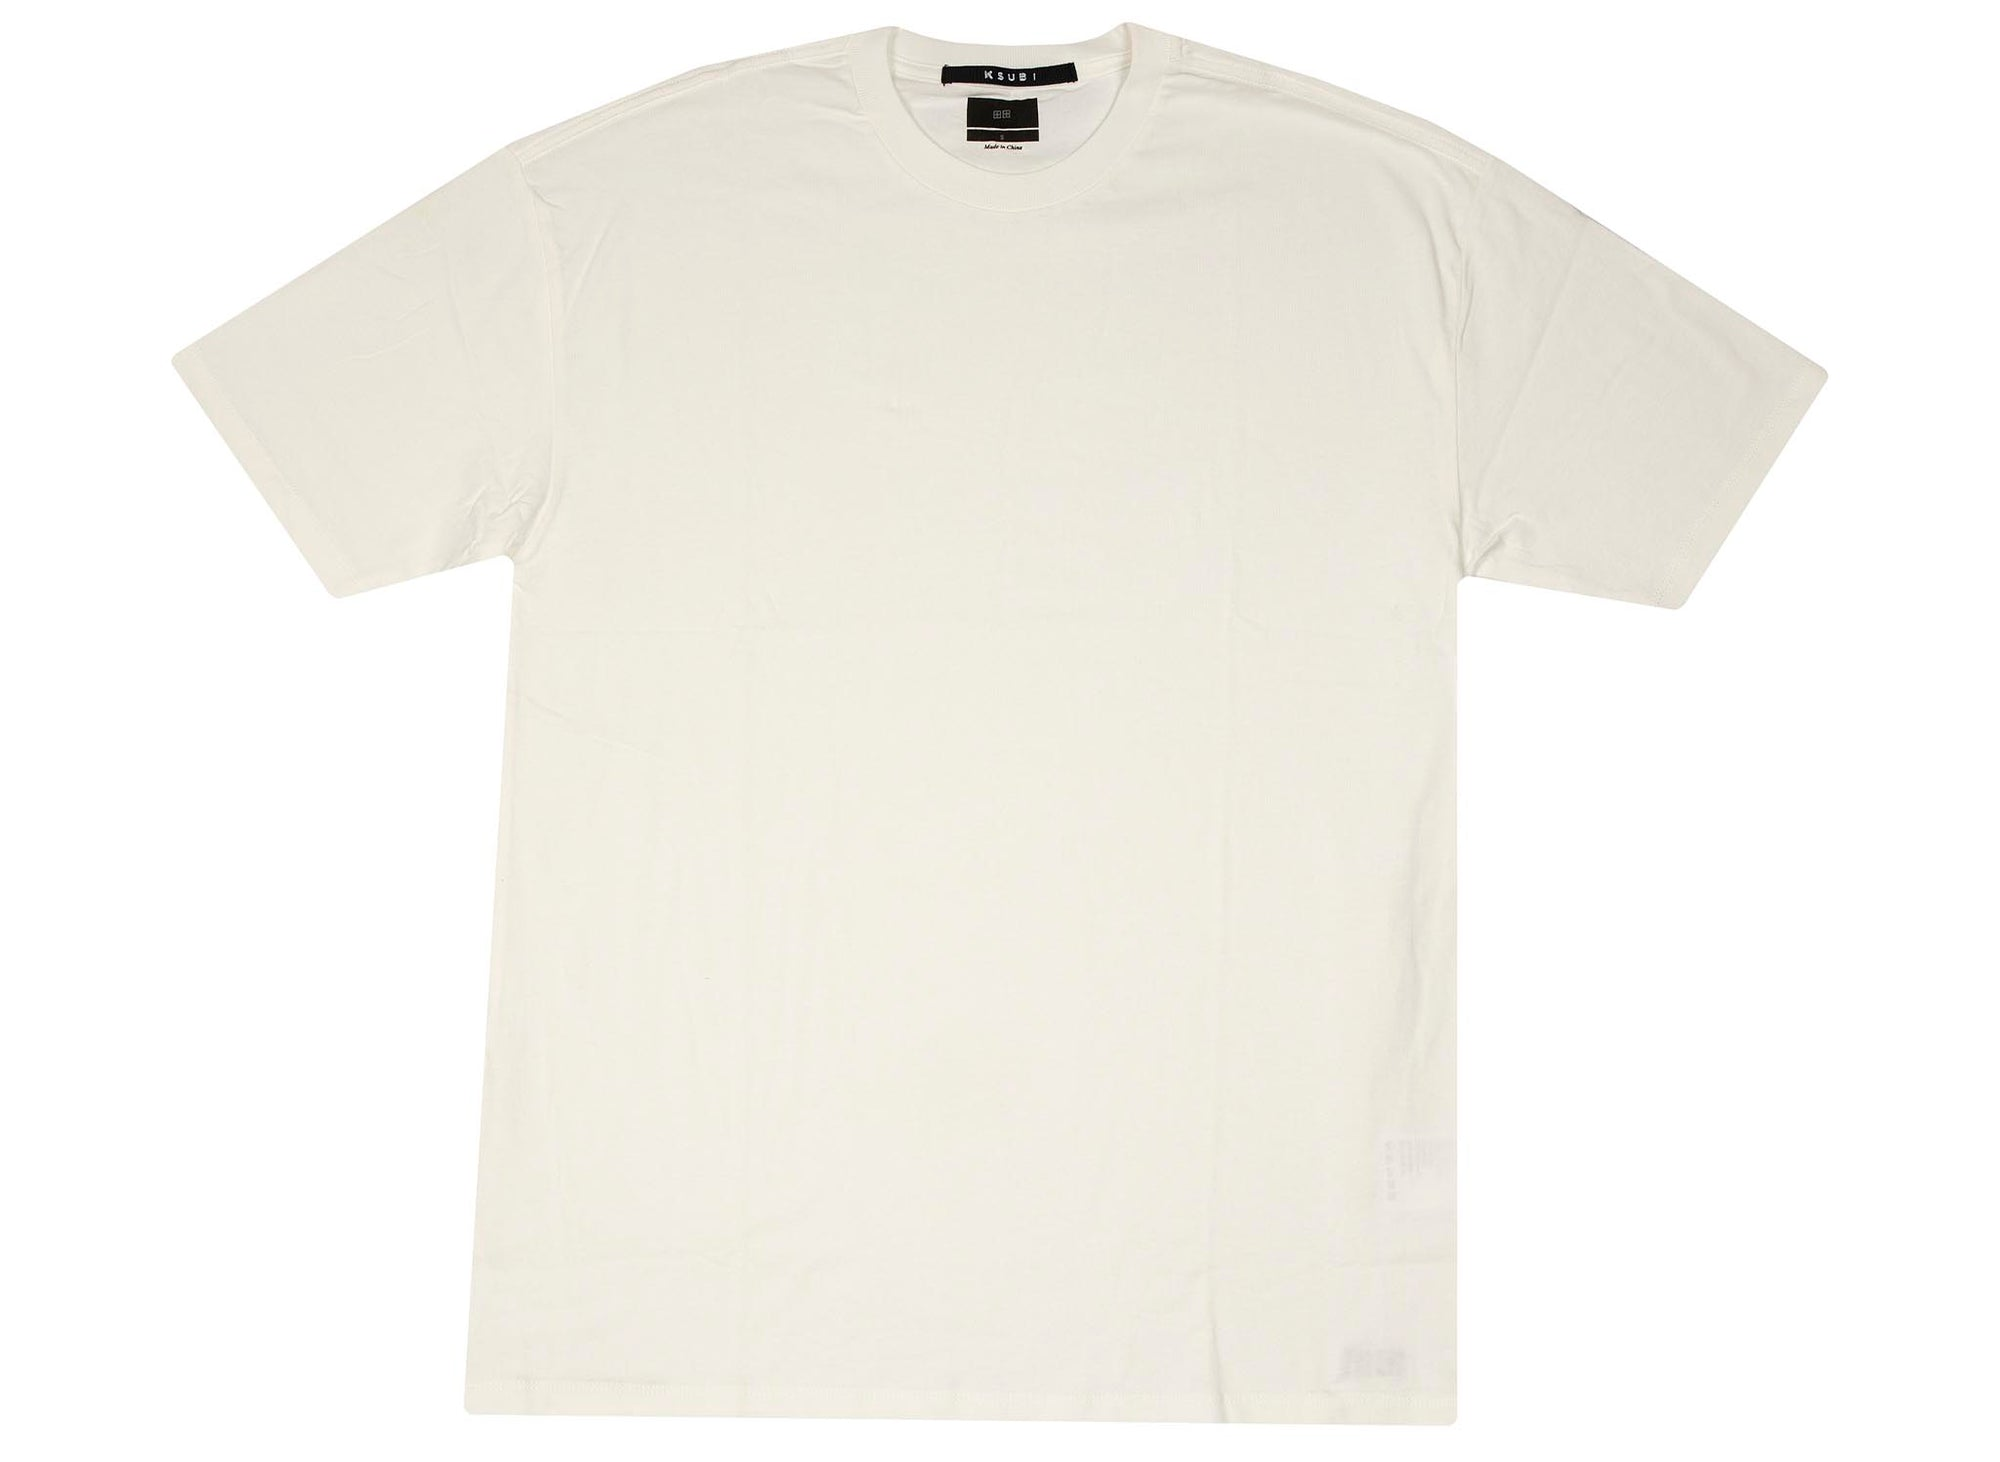 Ksubi Biggie S/S Tee 'Worn in White'